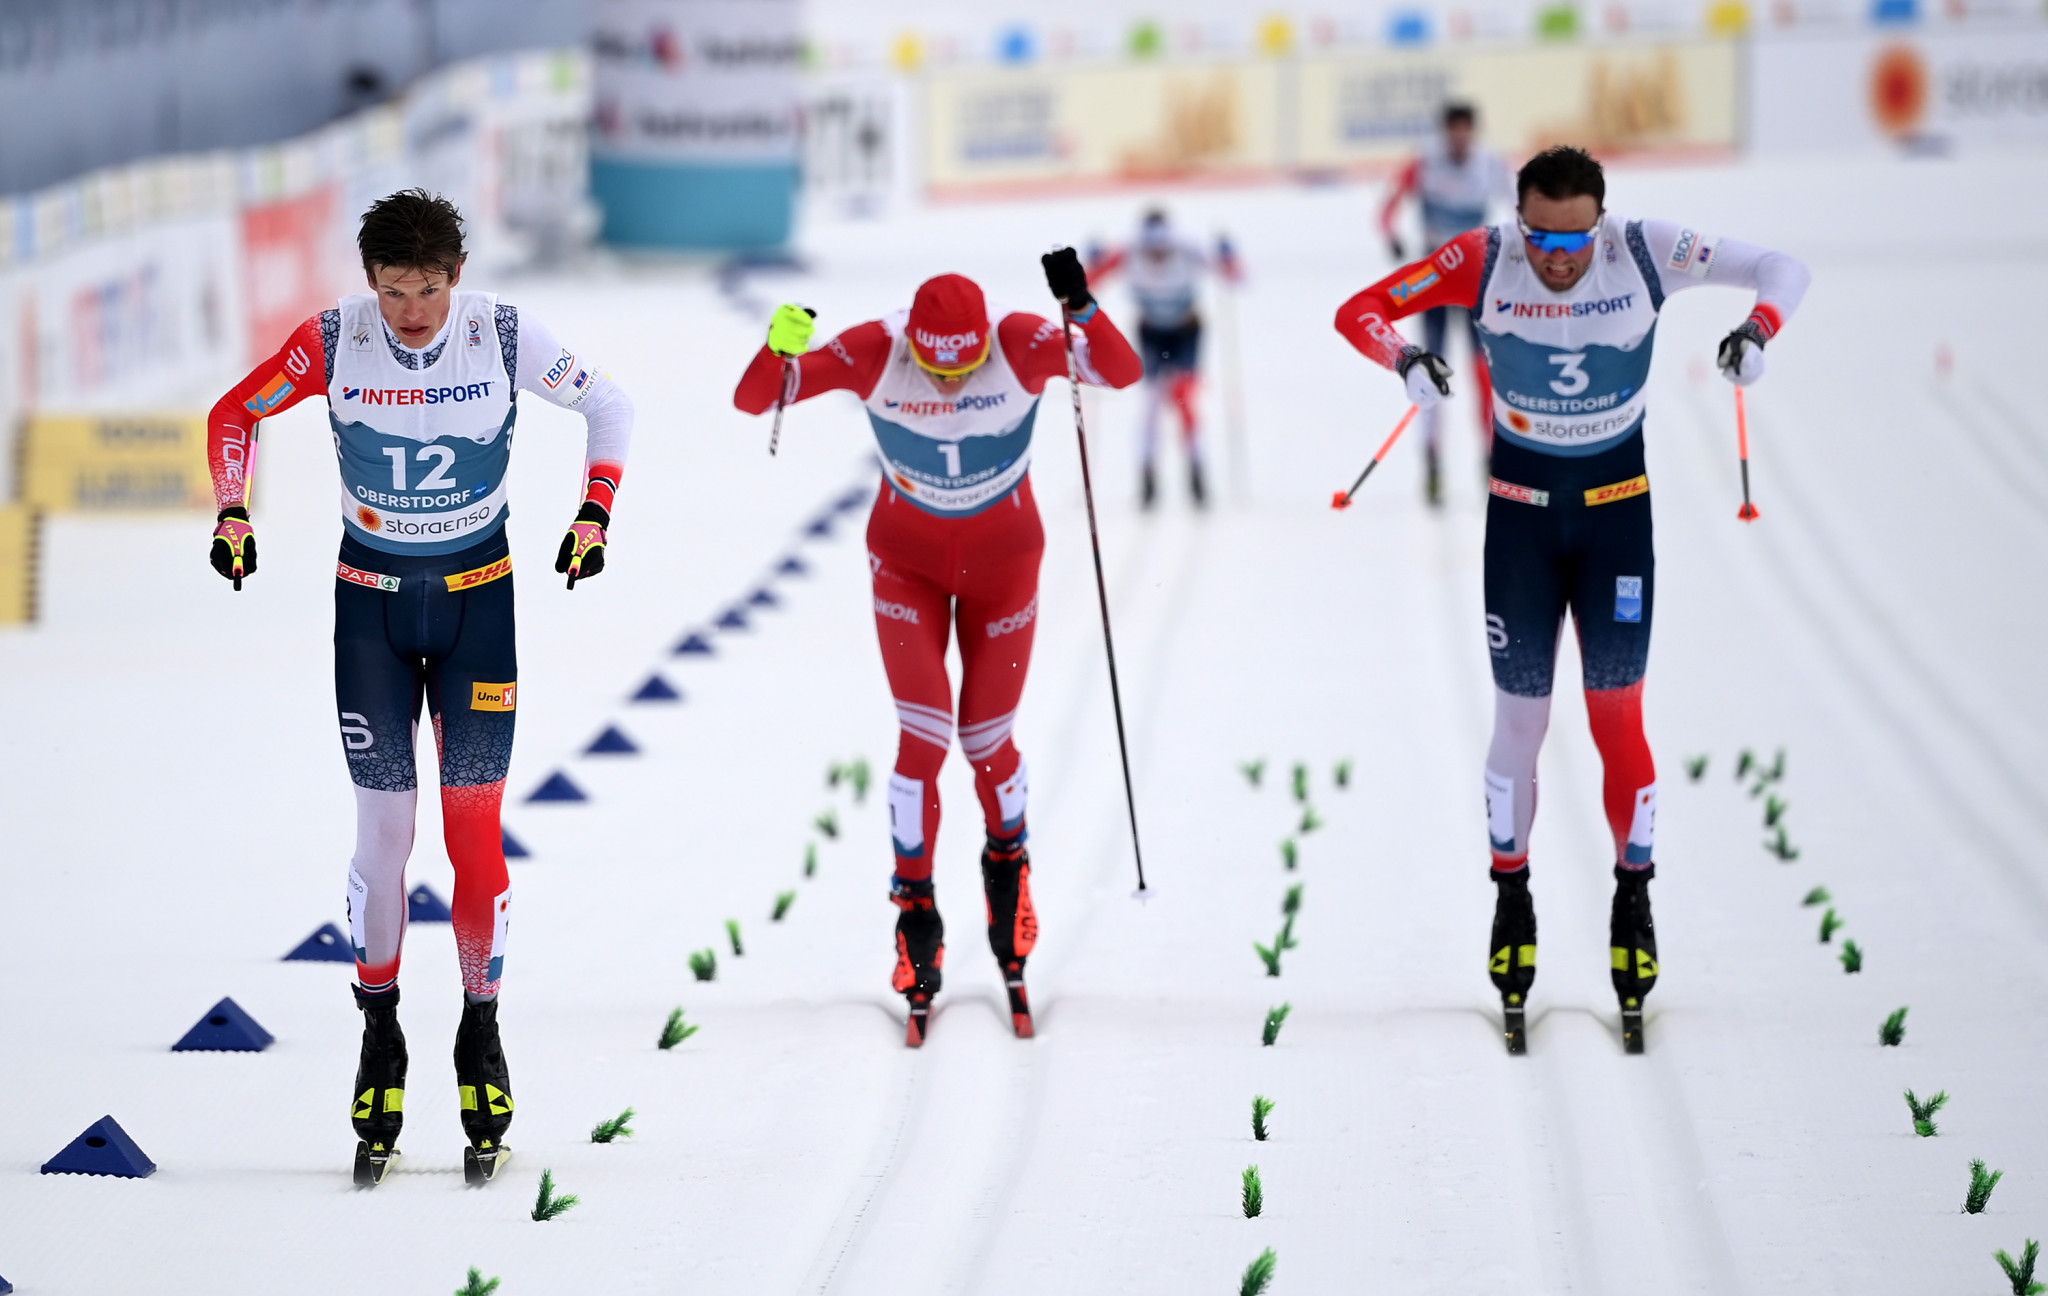 The FIS Cross-Country World Cup is set to conclude in Engadin ©Getty Images